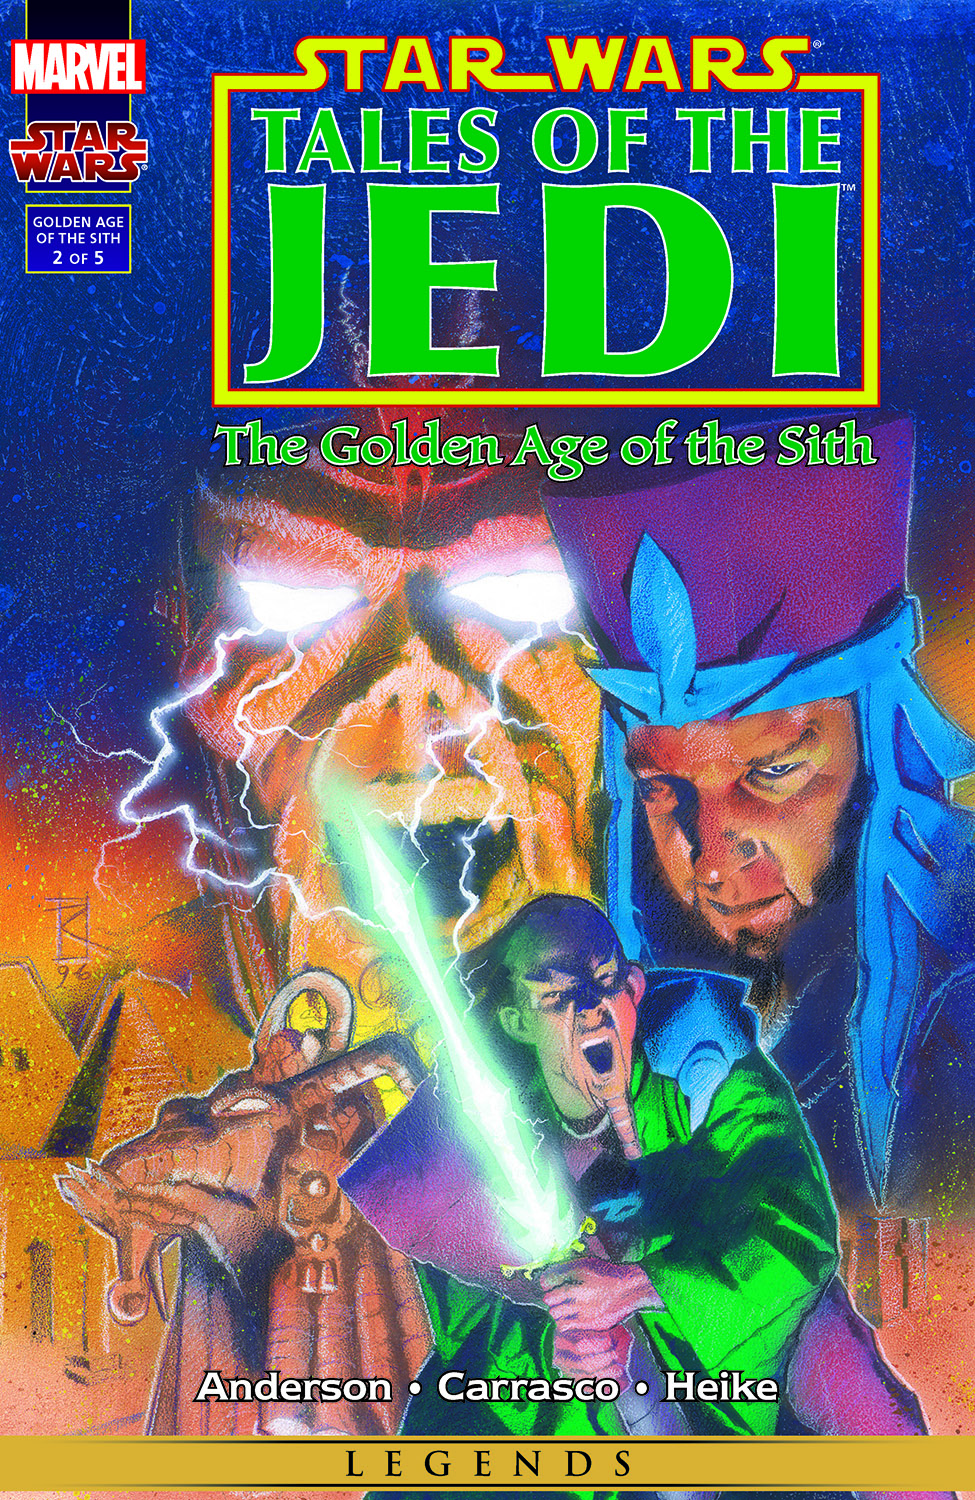 Star Wars: Tales of the Jedi - The Golden Age of the Sith (1996) #2